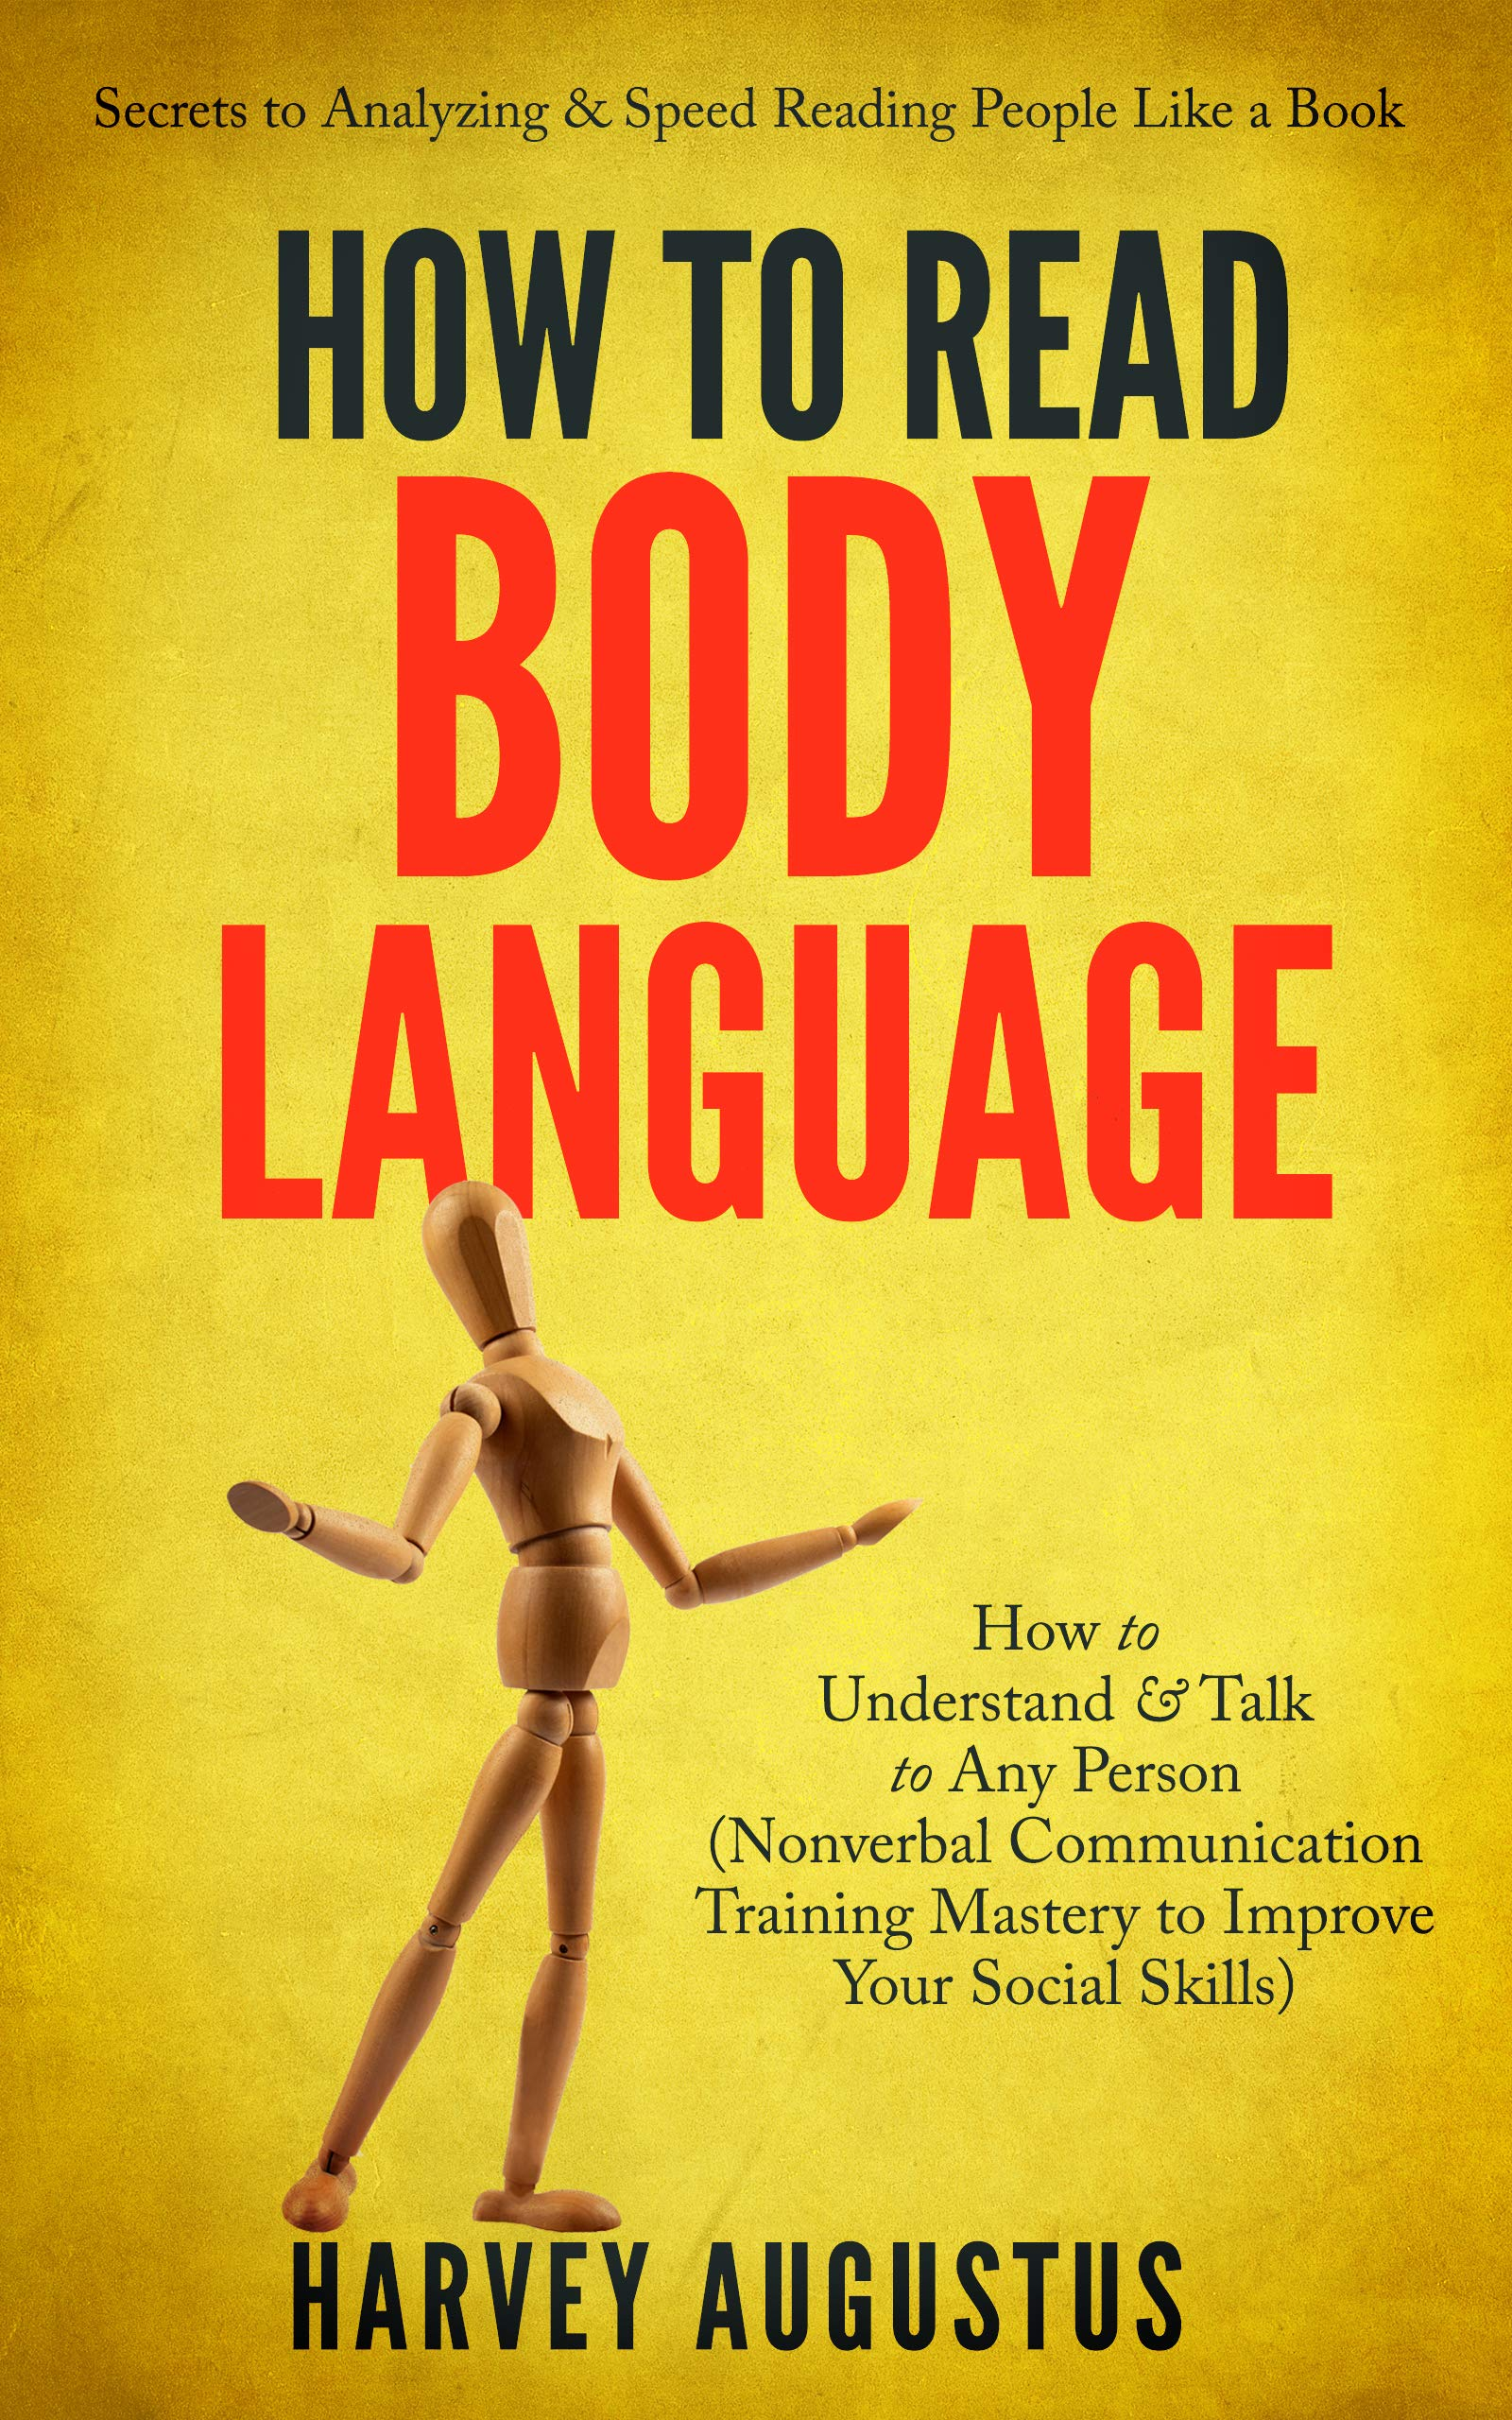 How to Read Body Language: Secrets to Analyzing & Speed Reading People Like a Book - How to Understand & Talk to Any Person (Nonverbal Communication Training Mastery to Improve Your Social Skills)